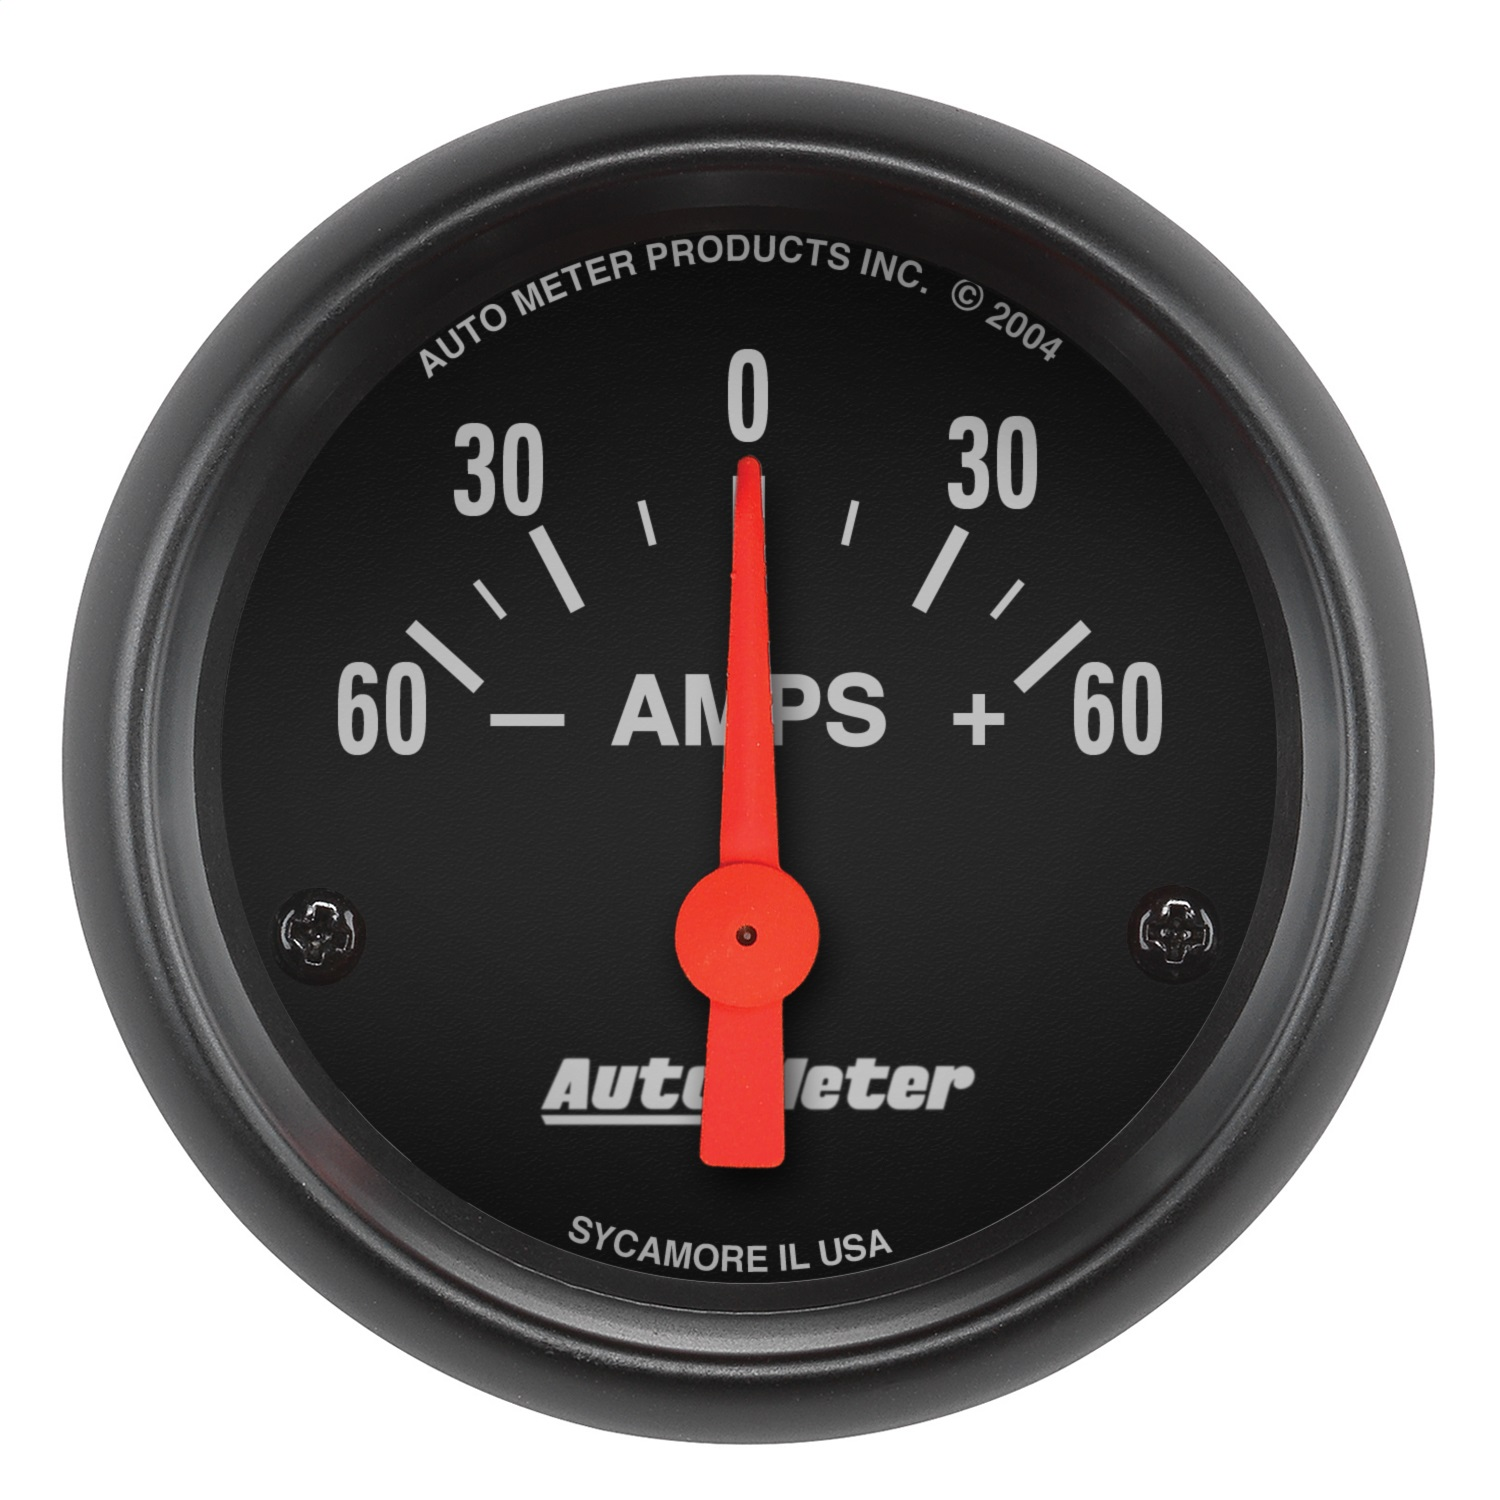 AutoMeter 2644 Z-Series Electric Ammeter Gauge; 2-1/16 in.; Black Dial Face; Fluorescent Red Pointer; White Incandescent Lighting; Electric Air-Core; 60-0-60 AMPS;